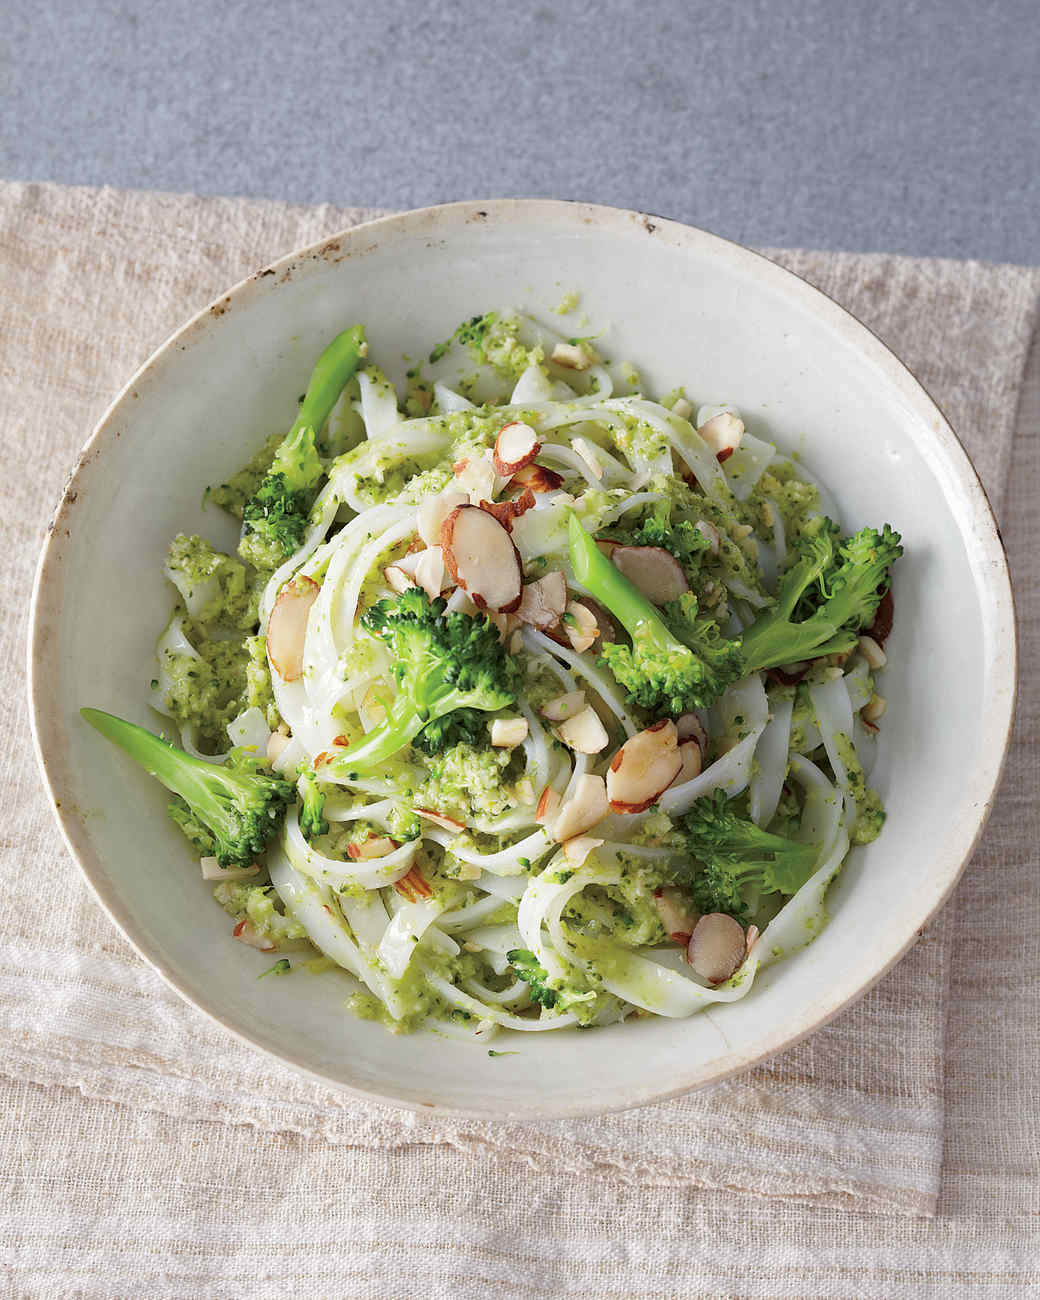 Rice Noodles with Broccoli-Almond Pesto